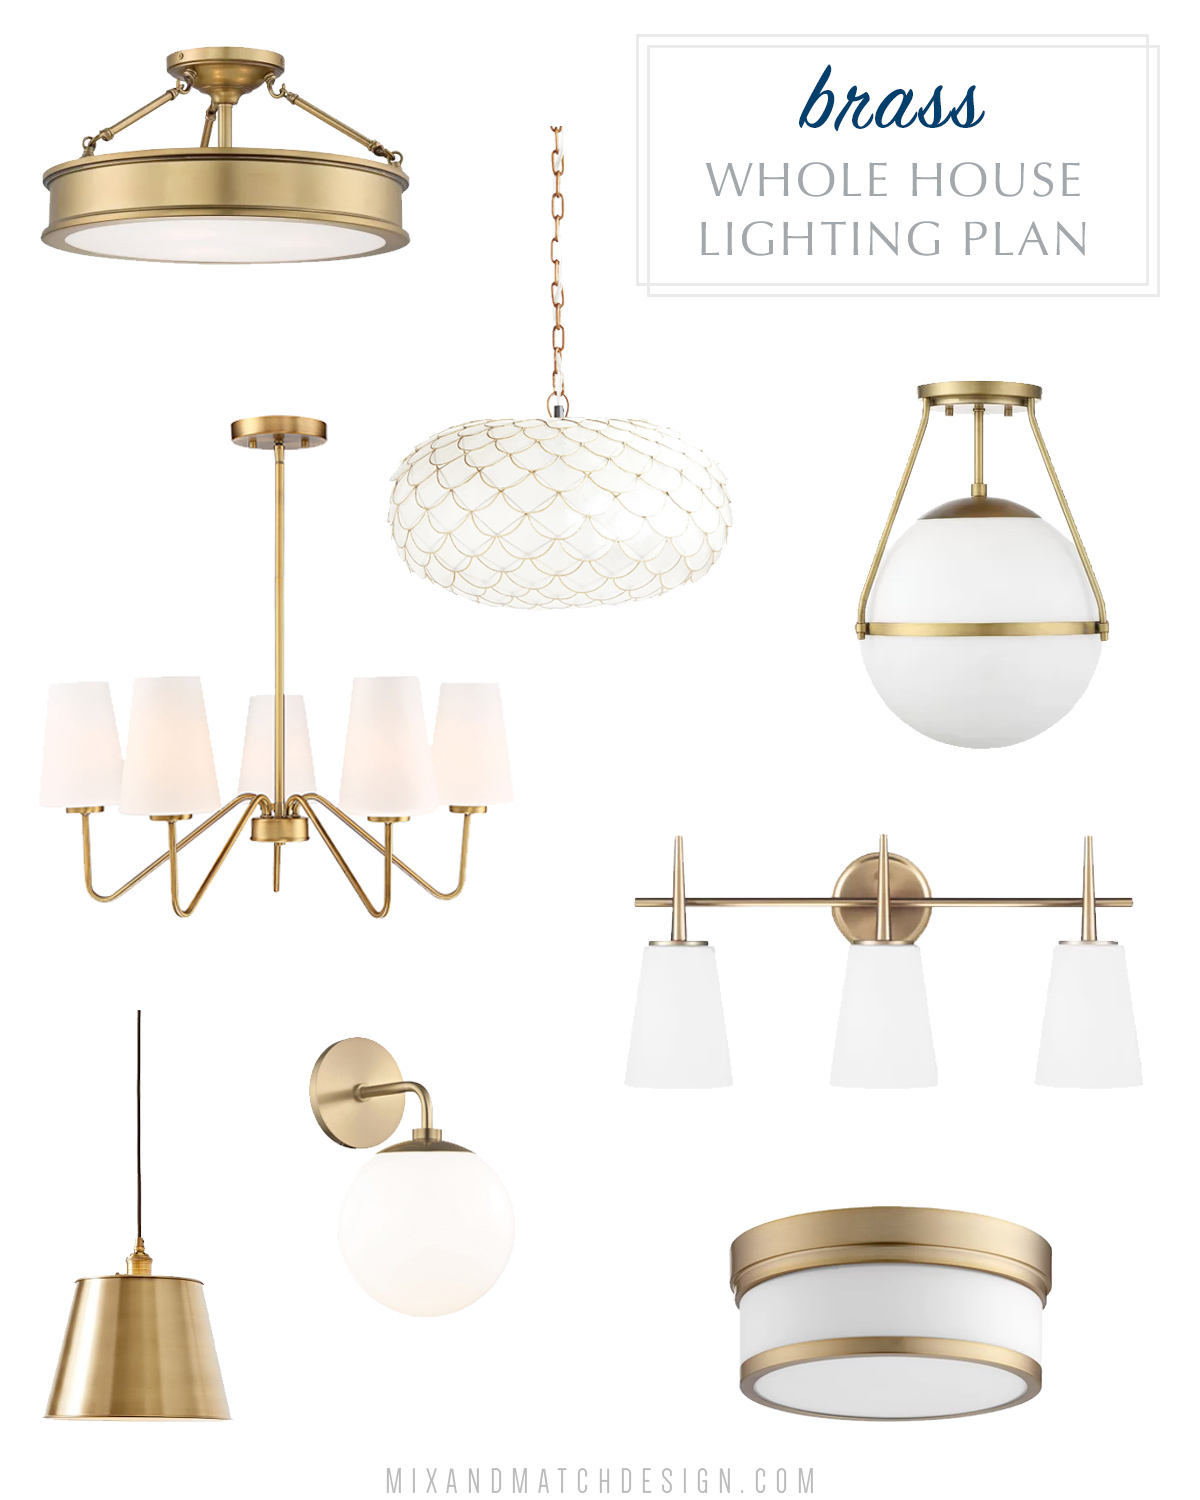 How to choose a lighting fixture for your home